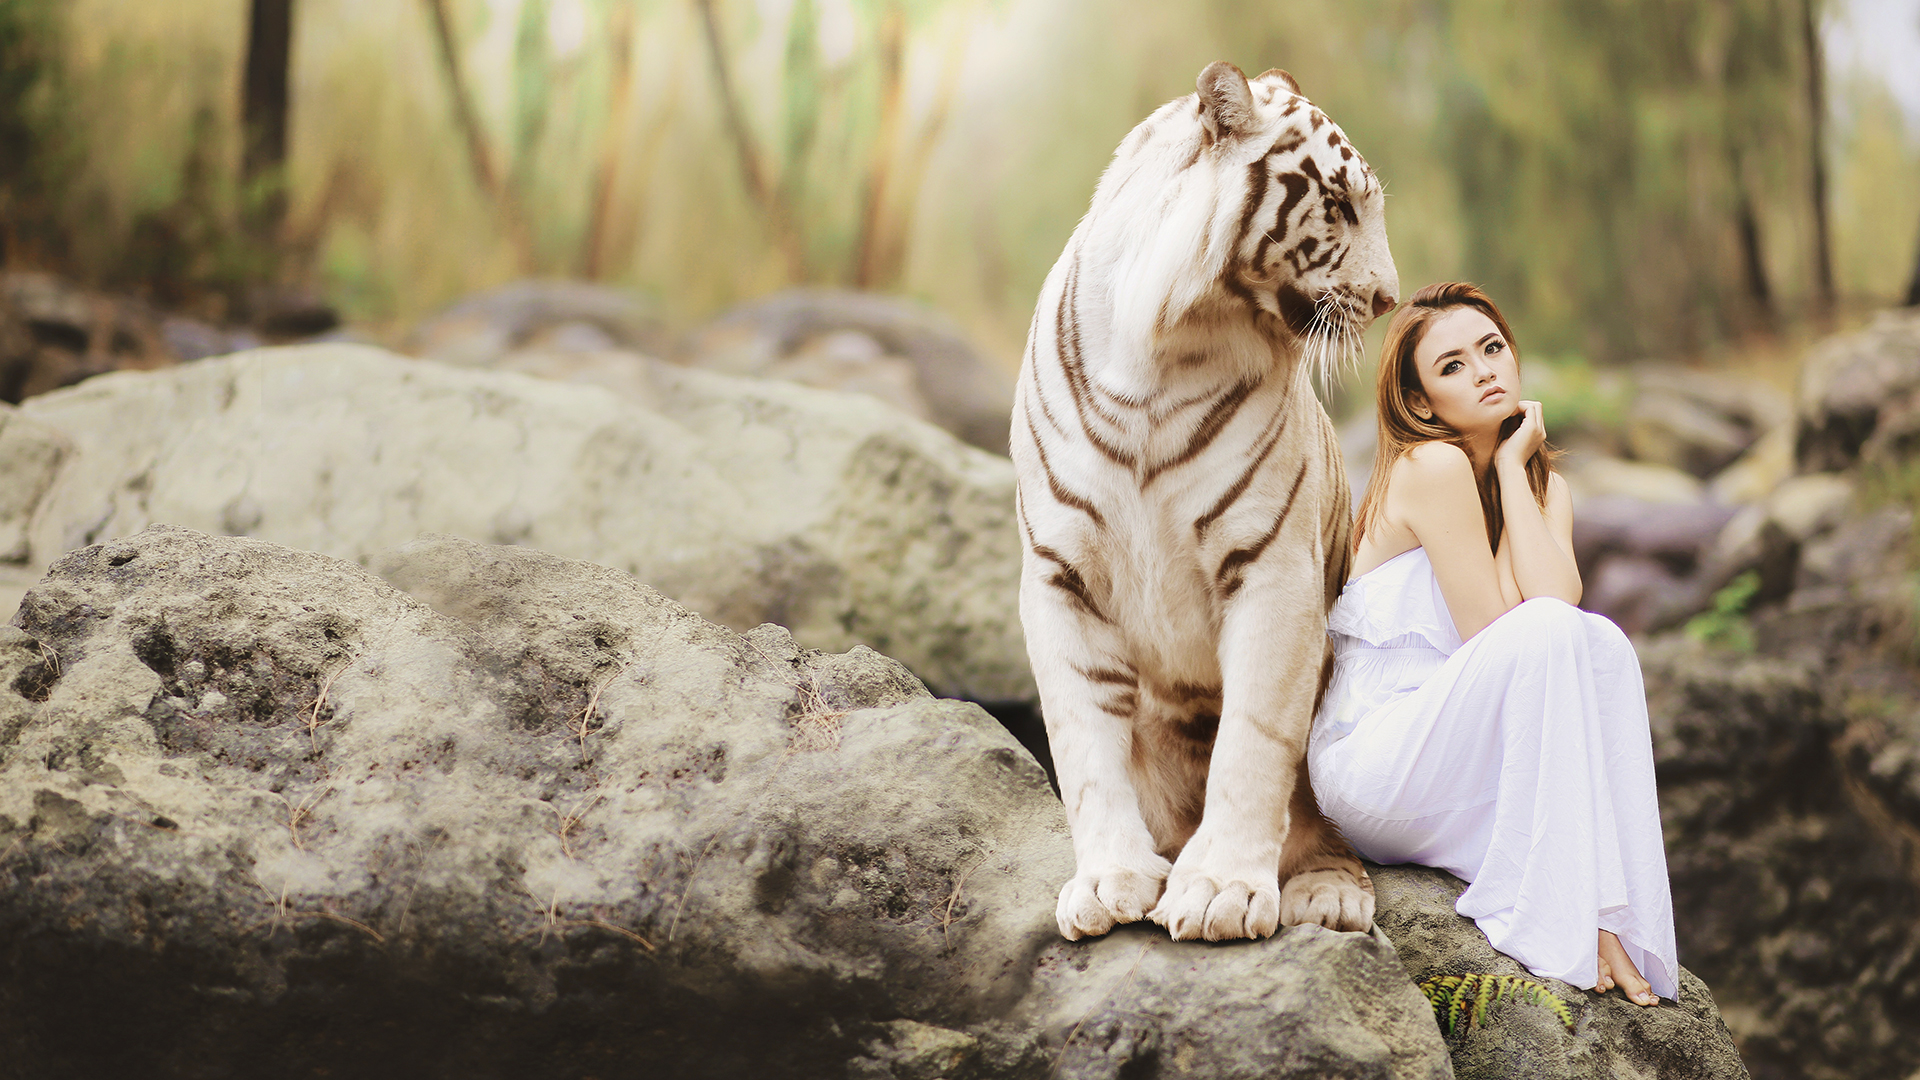 4k White Tiger 4k Wallpaper Hd